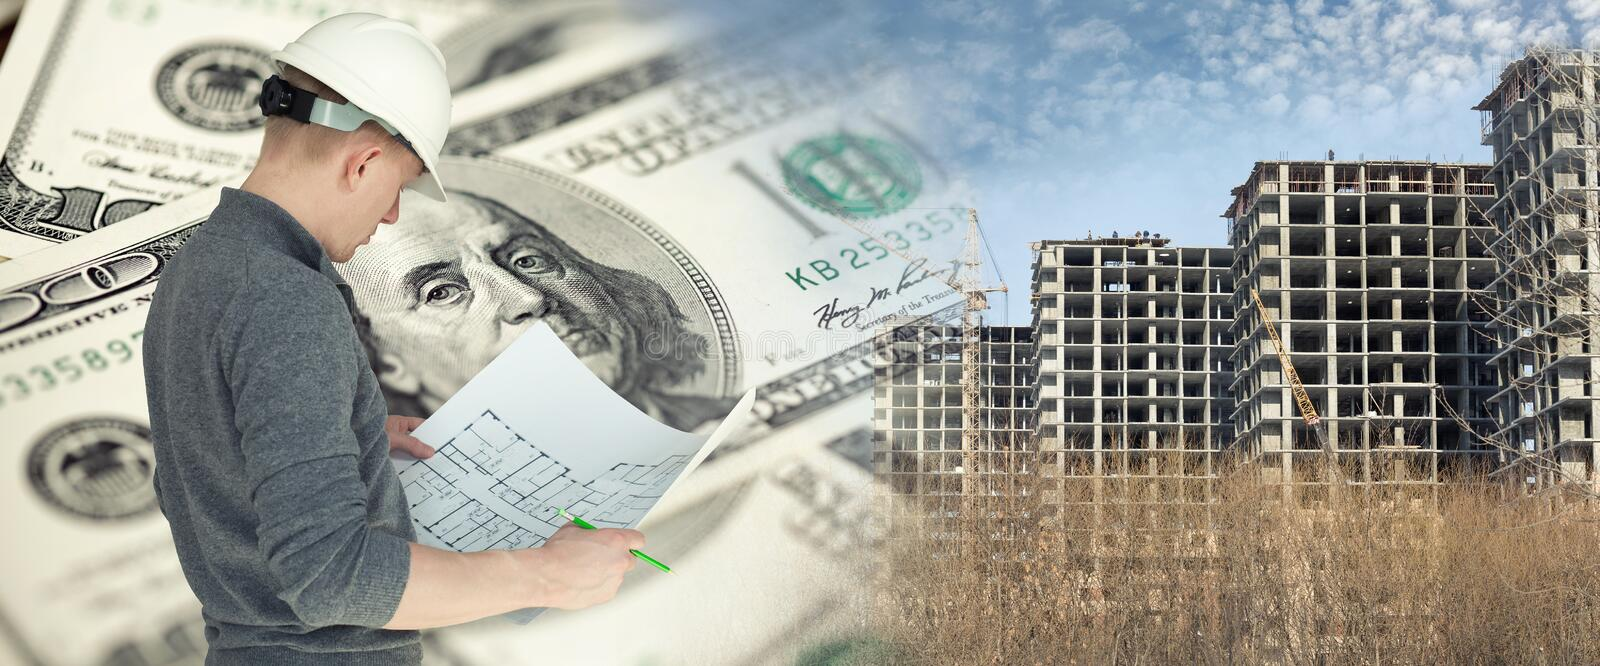 Collage with an engineer on construction site. Cranes and US dollars royalty free stock photo